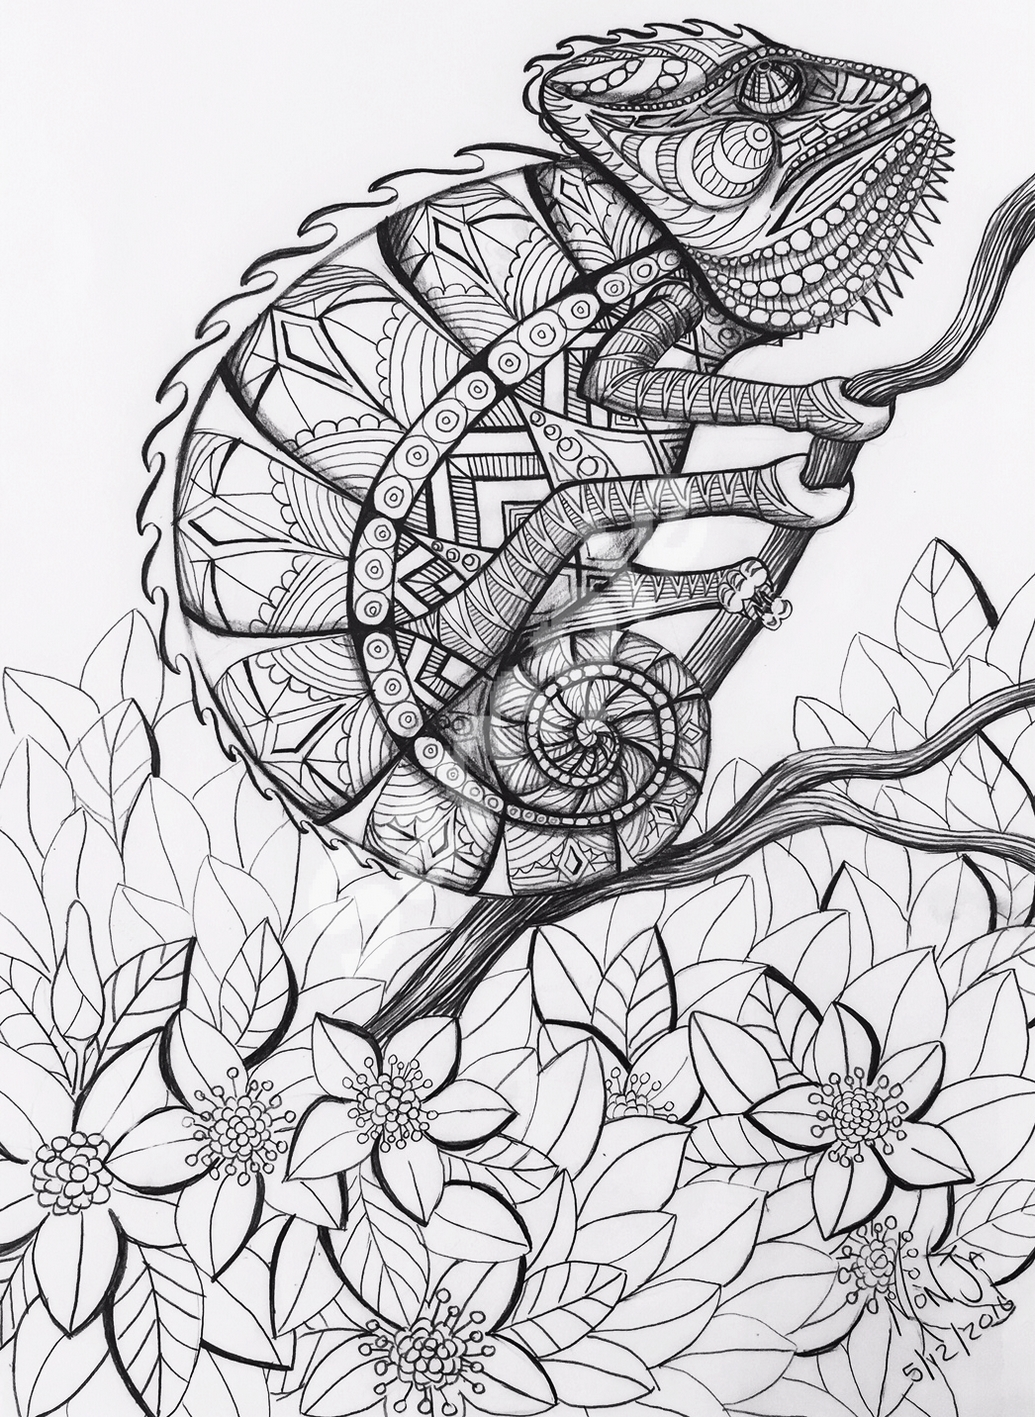 colour-my-dreams-coloring-book-chameleon